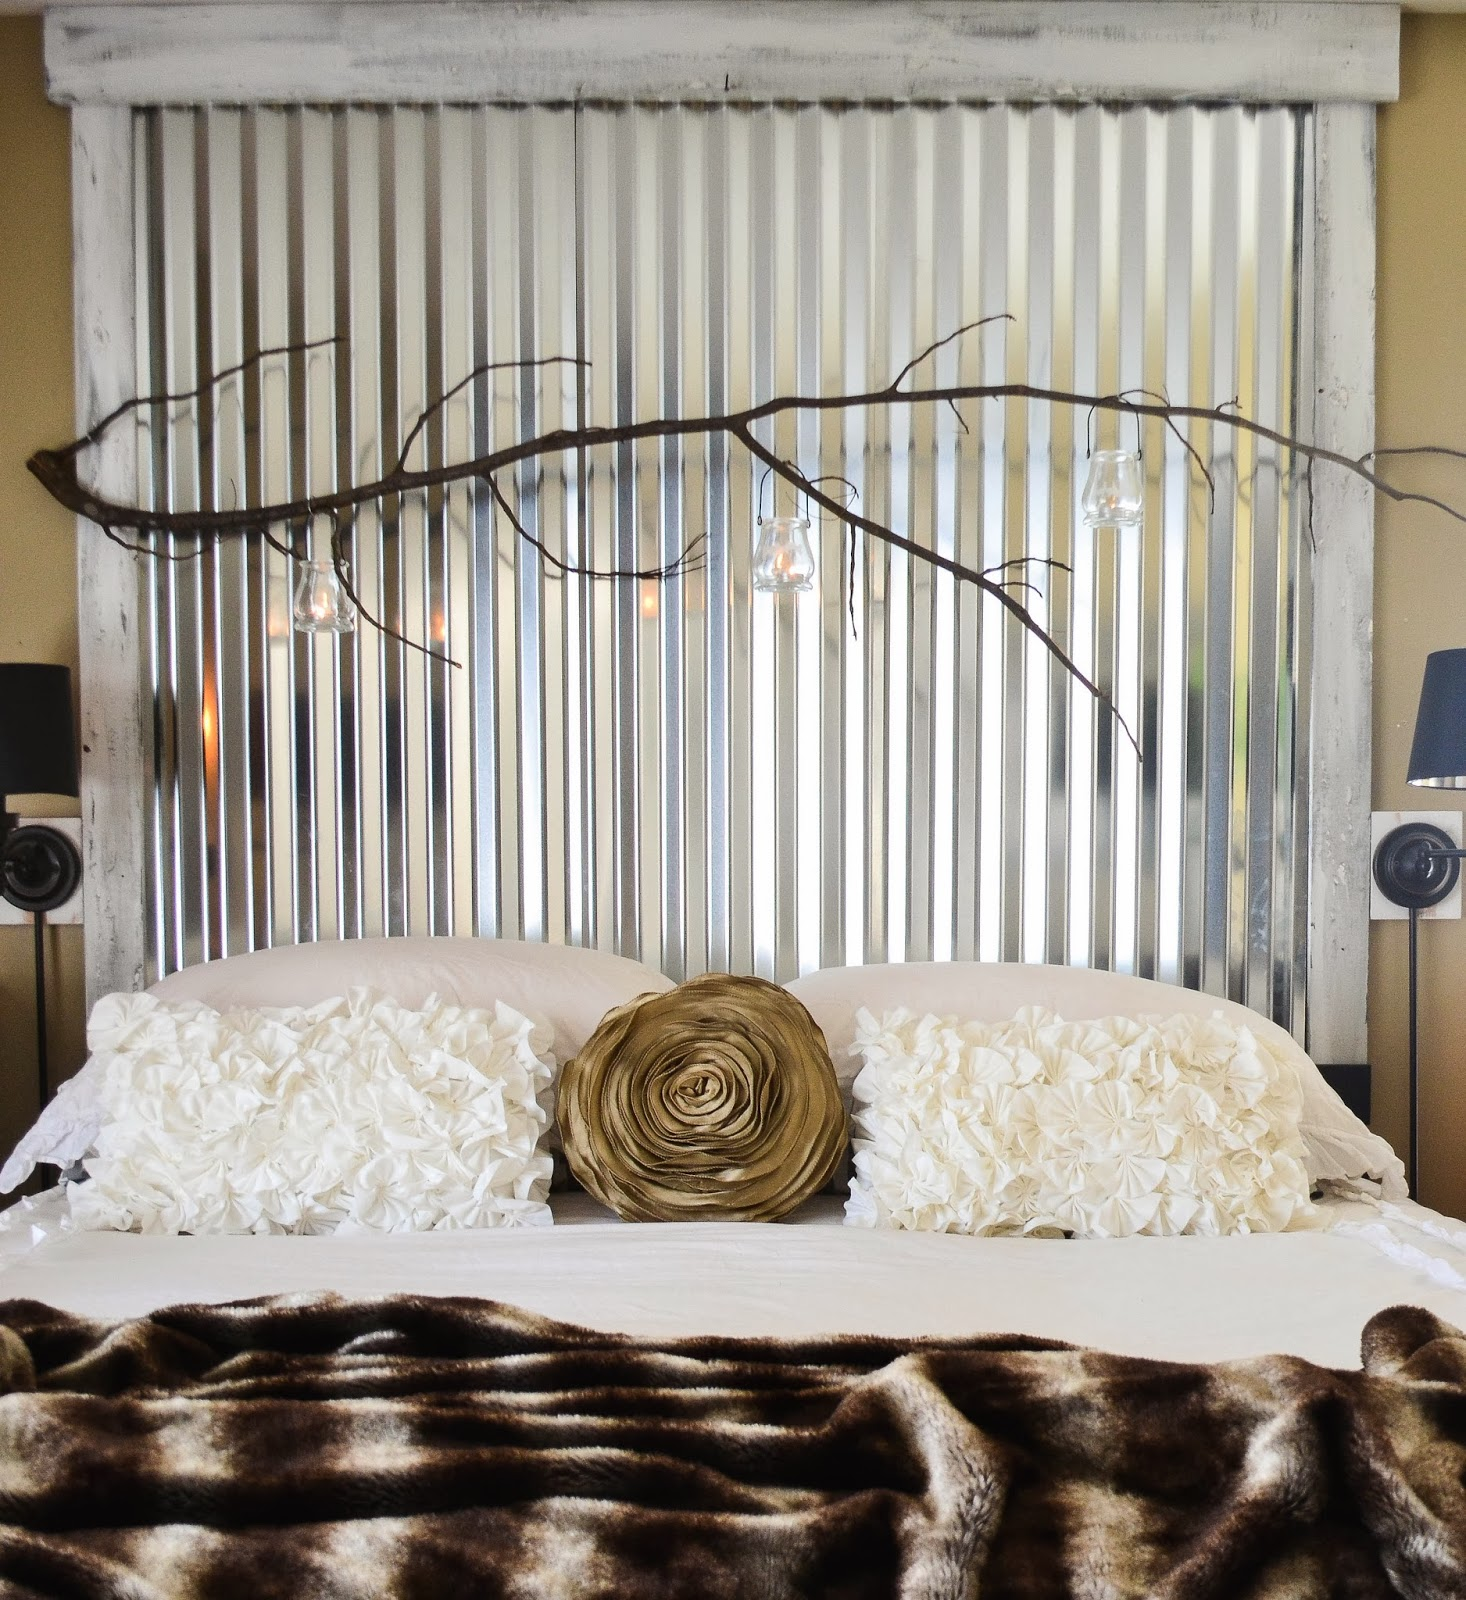 industrial style bedroom furniture. NATURE...accents An Industrial Style Bedroom Furniture S